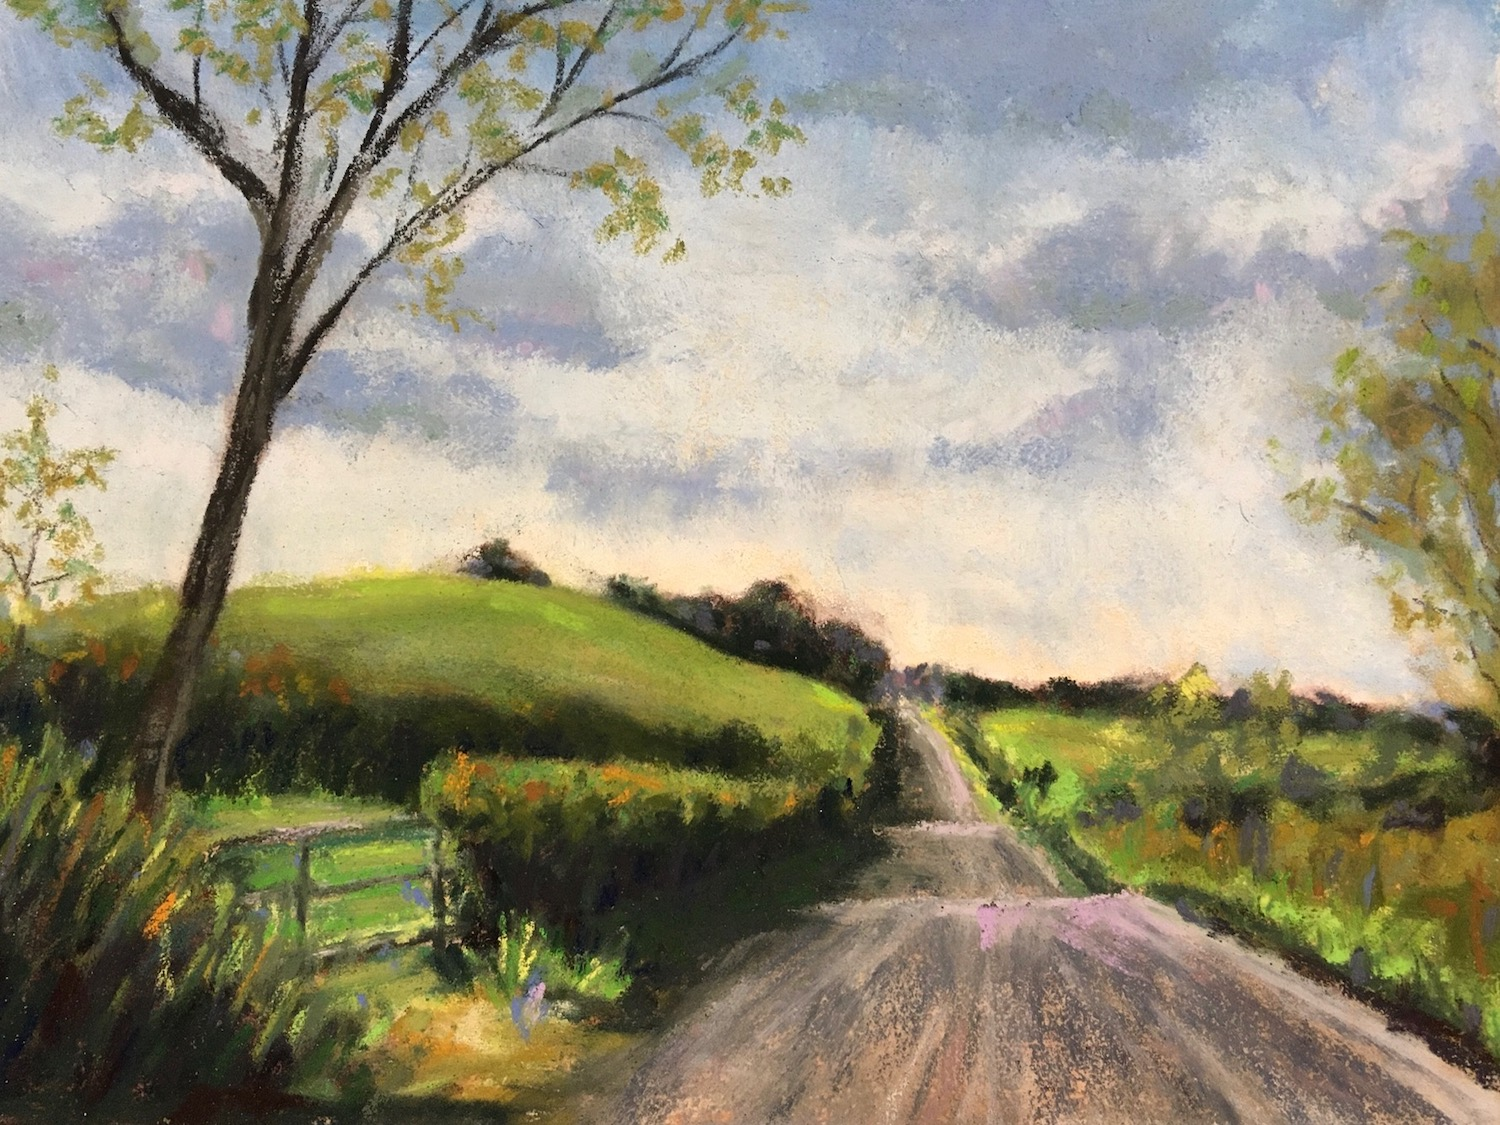 pastel landscape of hilly country road through fields in Ireland